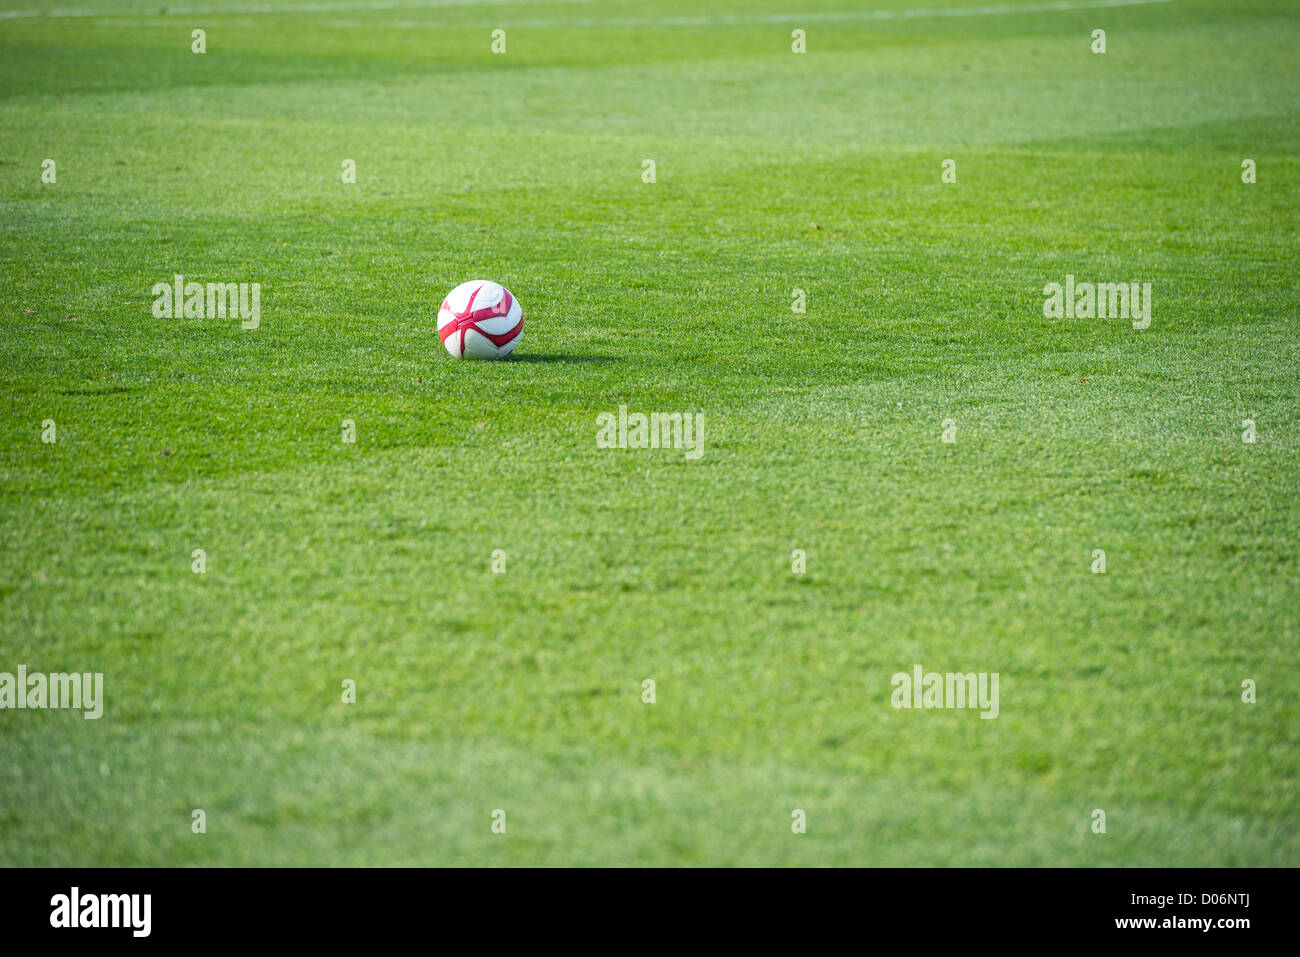 Football on a football pitch. - Stock Image